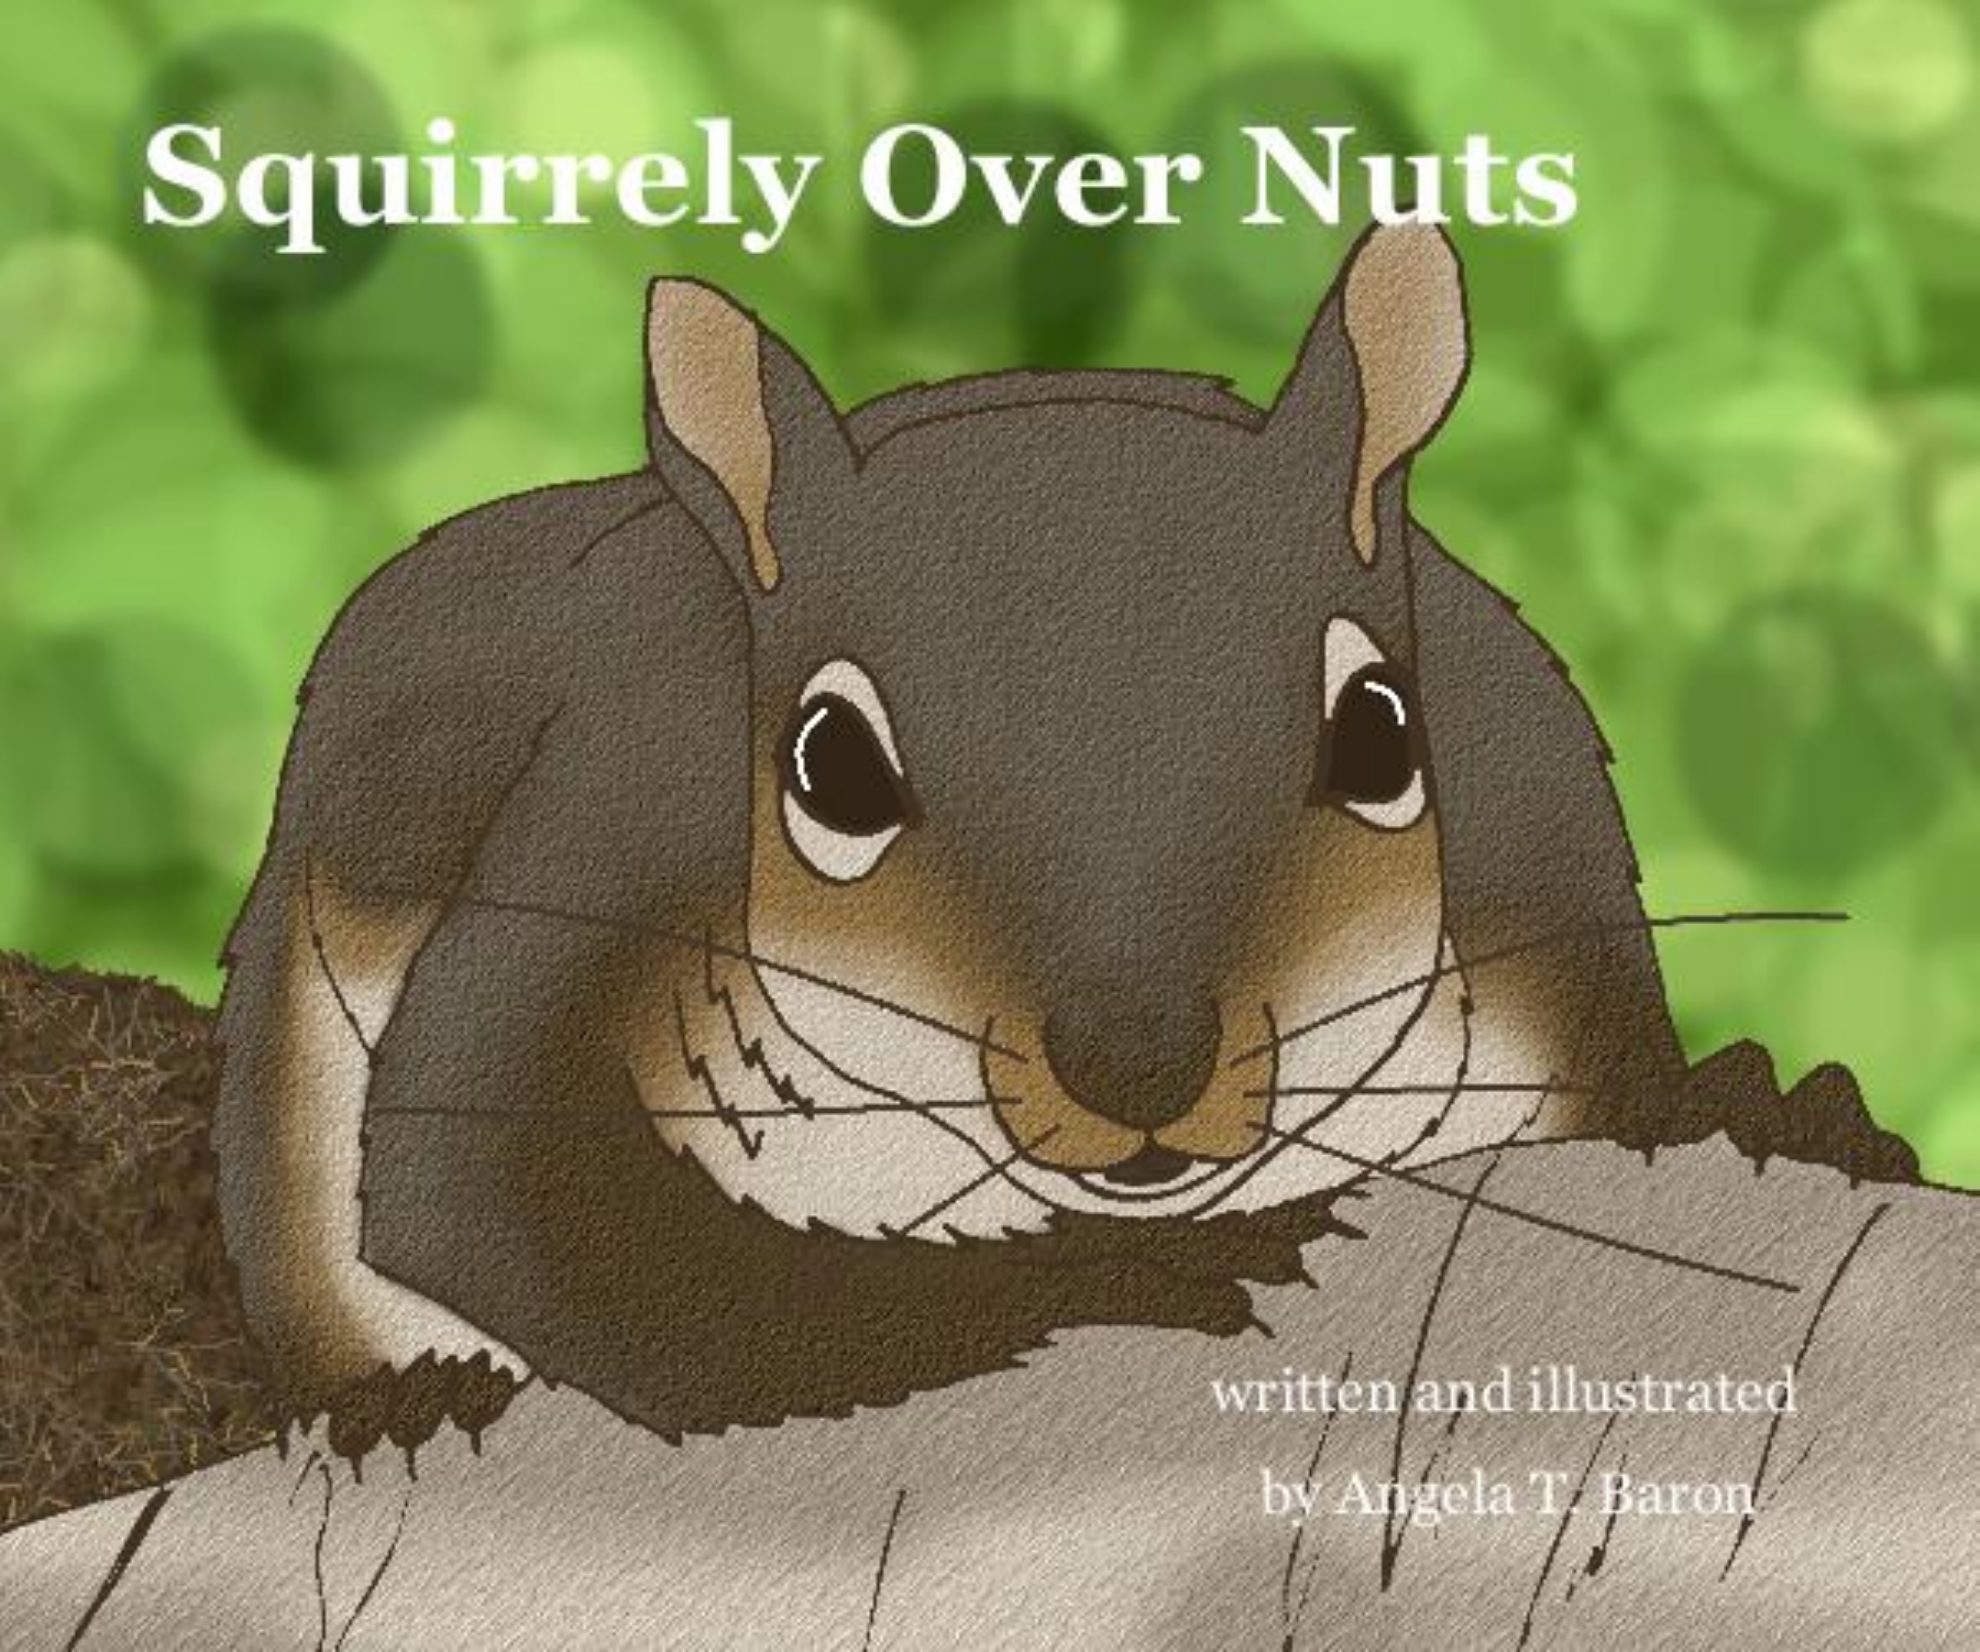 Squirrely Over Nuts Book Cover